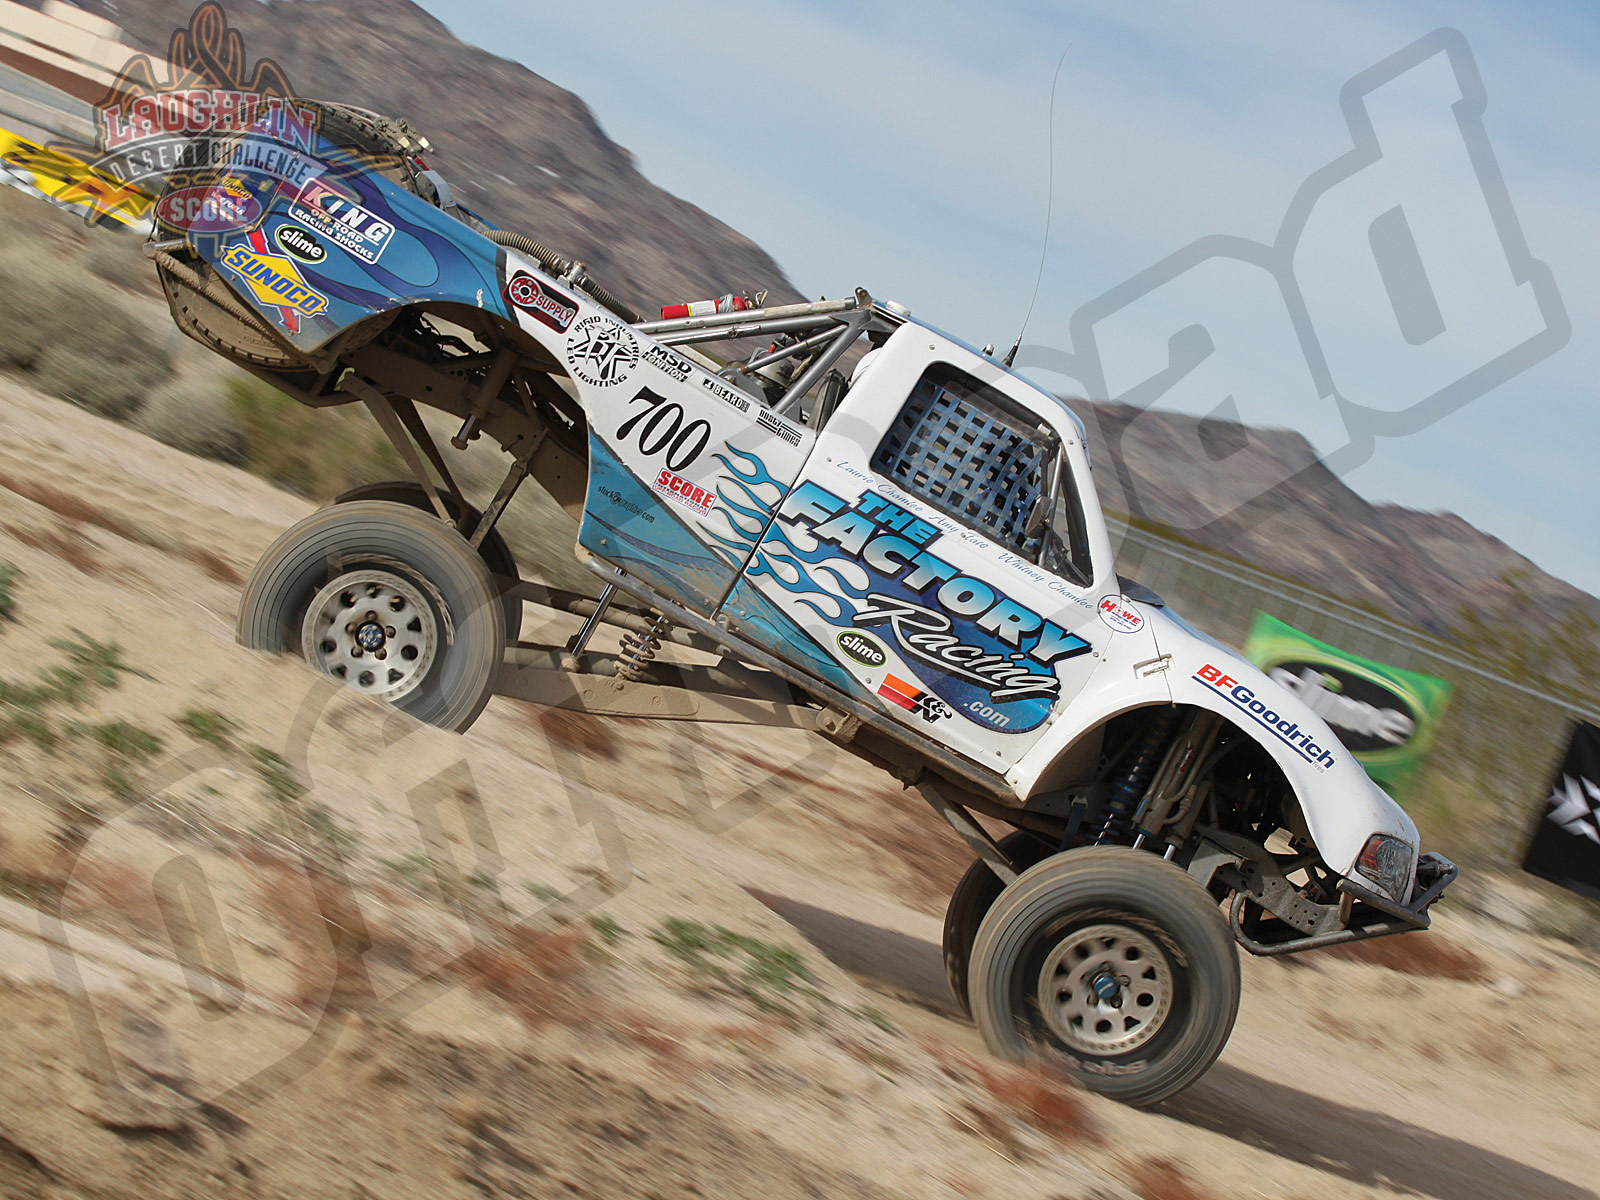 012011or 6638+2011 score laughlin desert challenge+truck classes